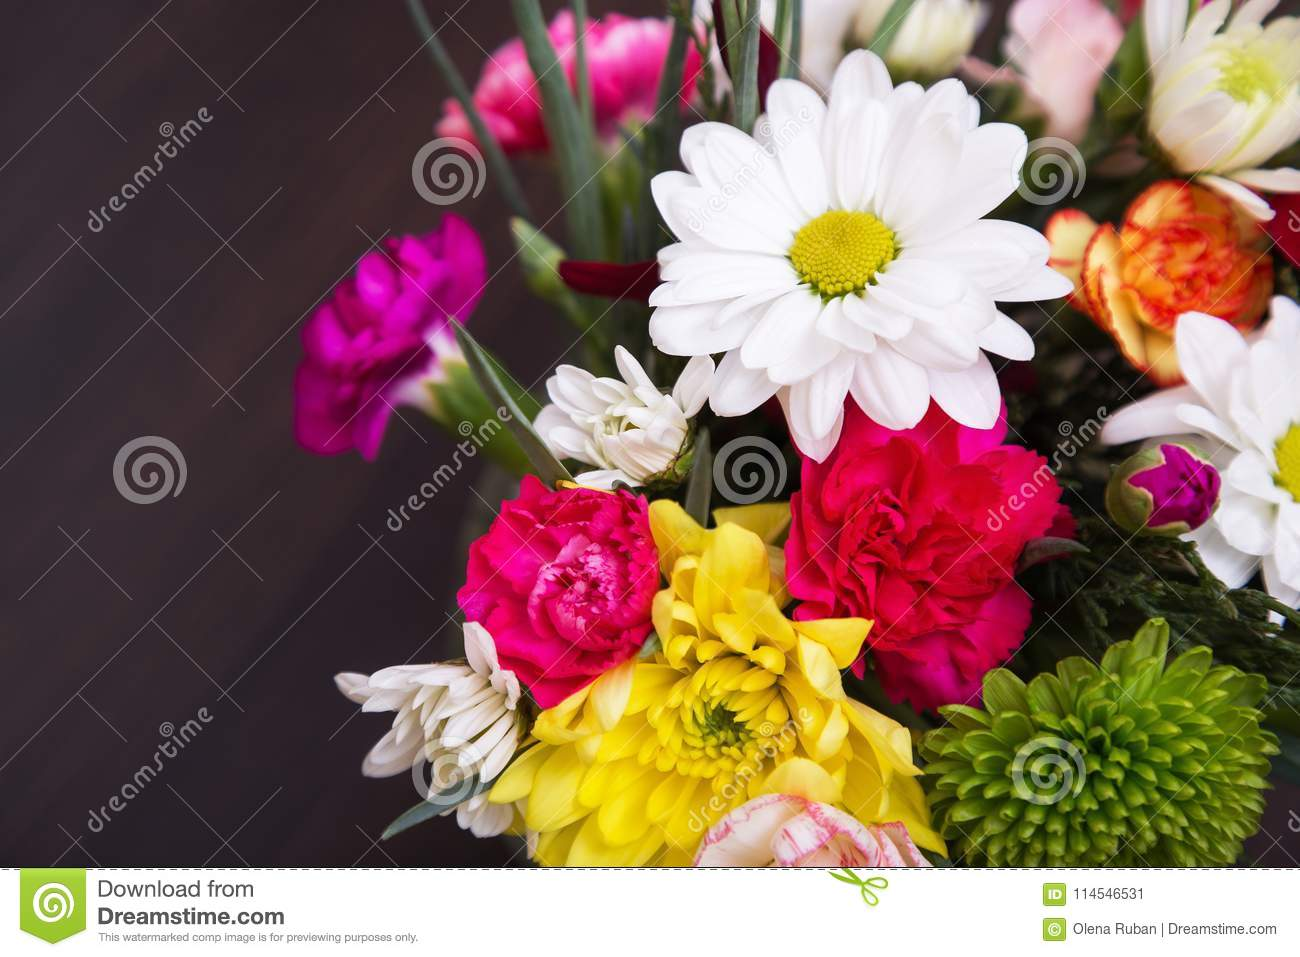 Bouquet of different flowers close up stock image image of garden download bouquet of different flowers close up stock image image of garden fresh izmirmasajfo